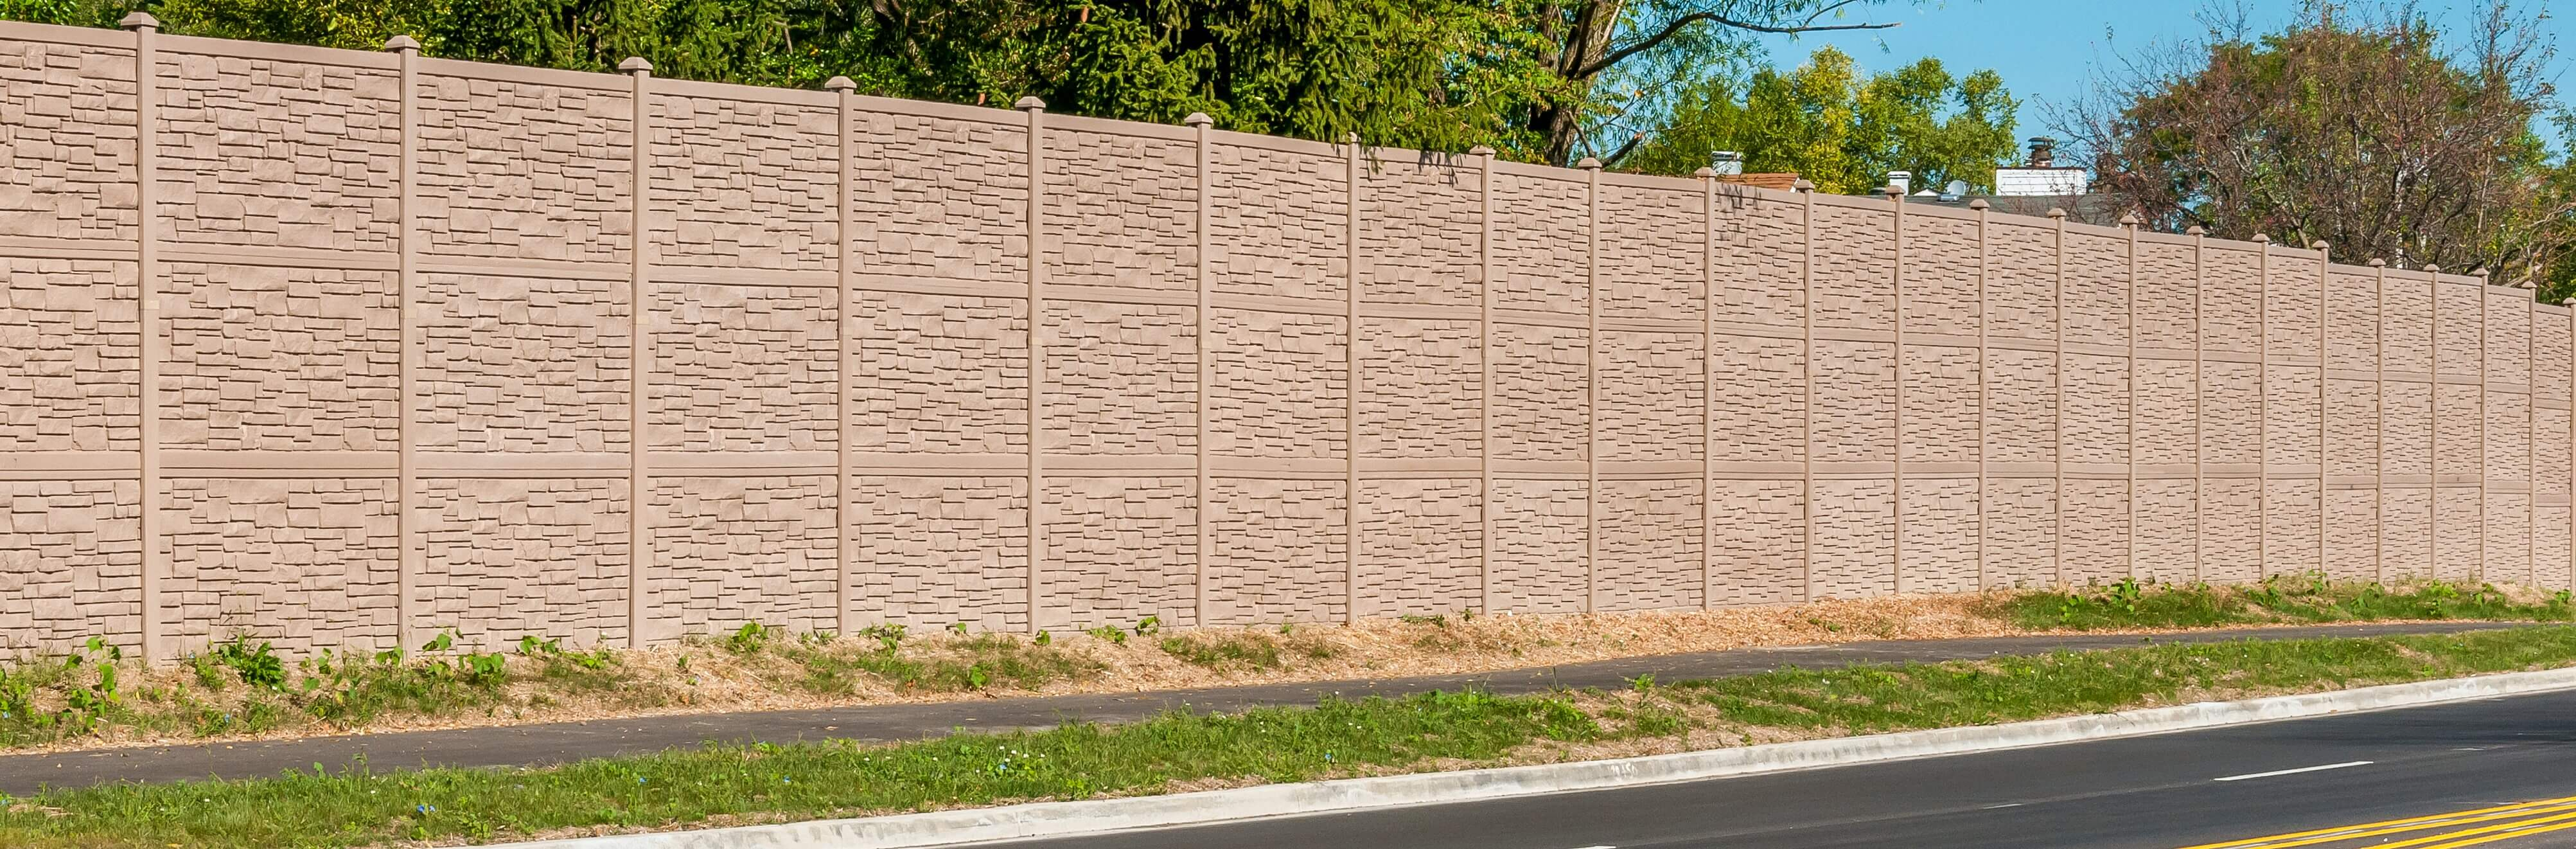 12' Tall Sound Wall - Simulated Stone